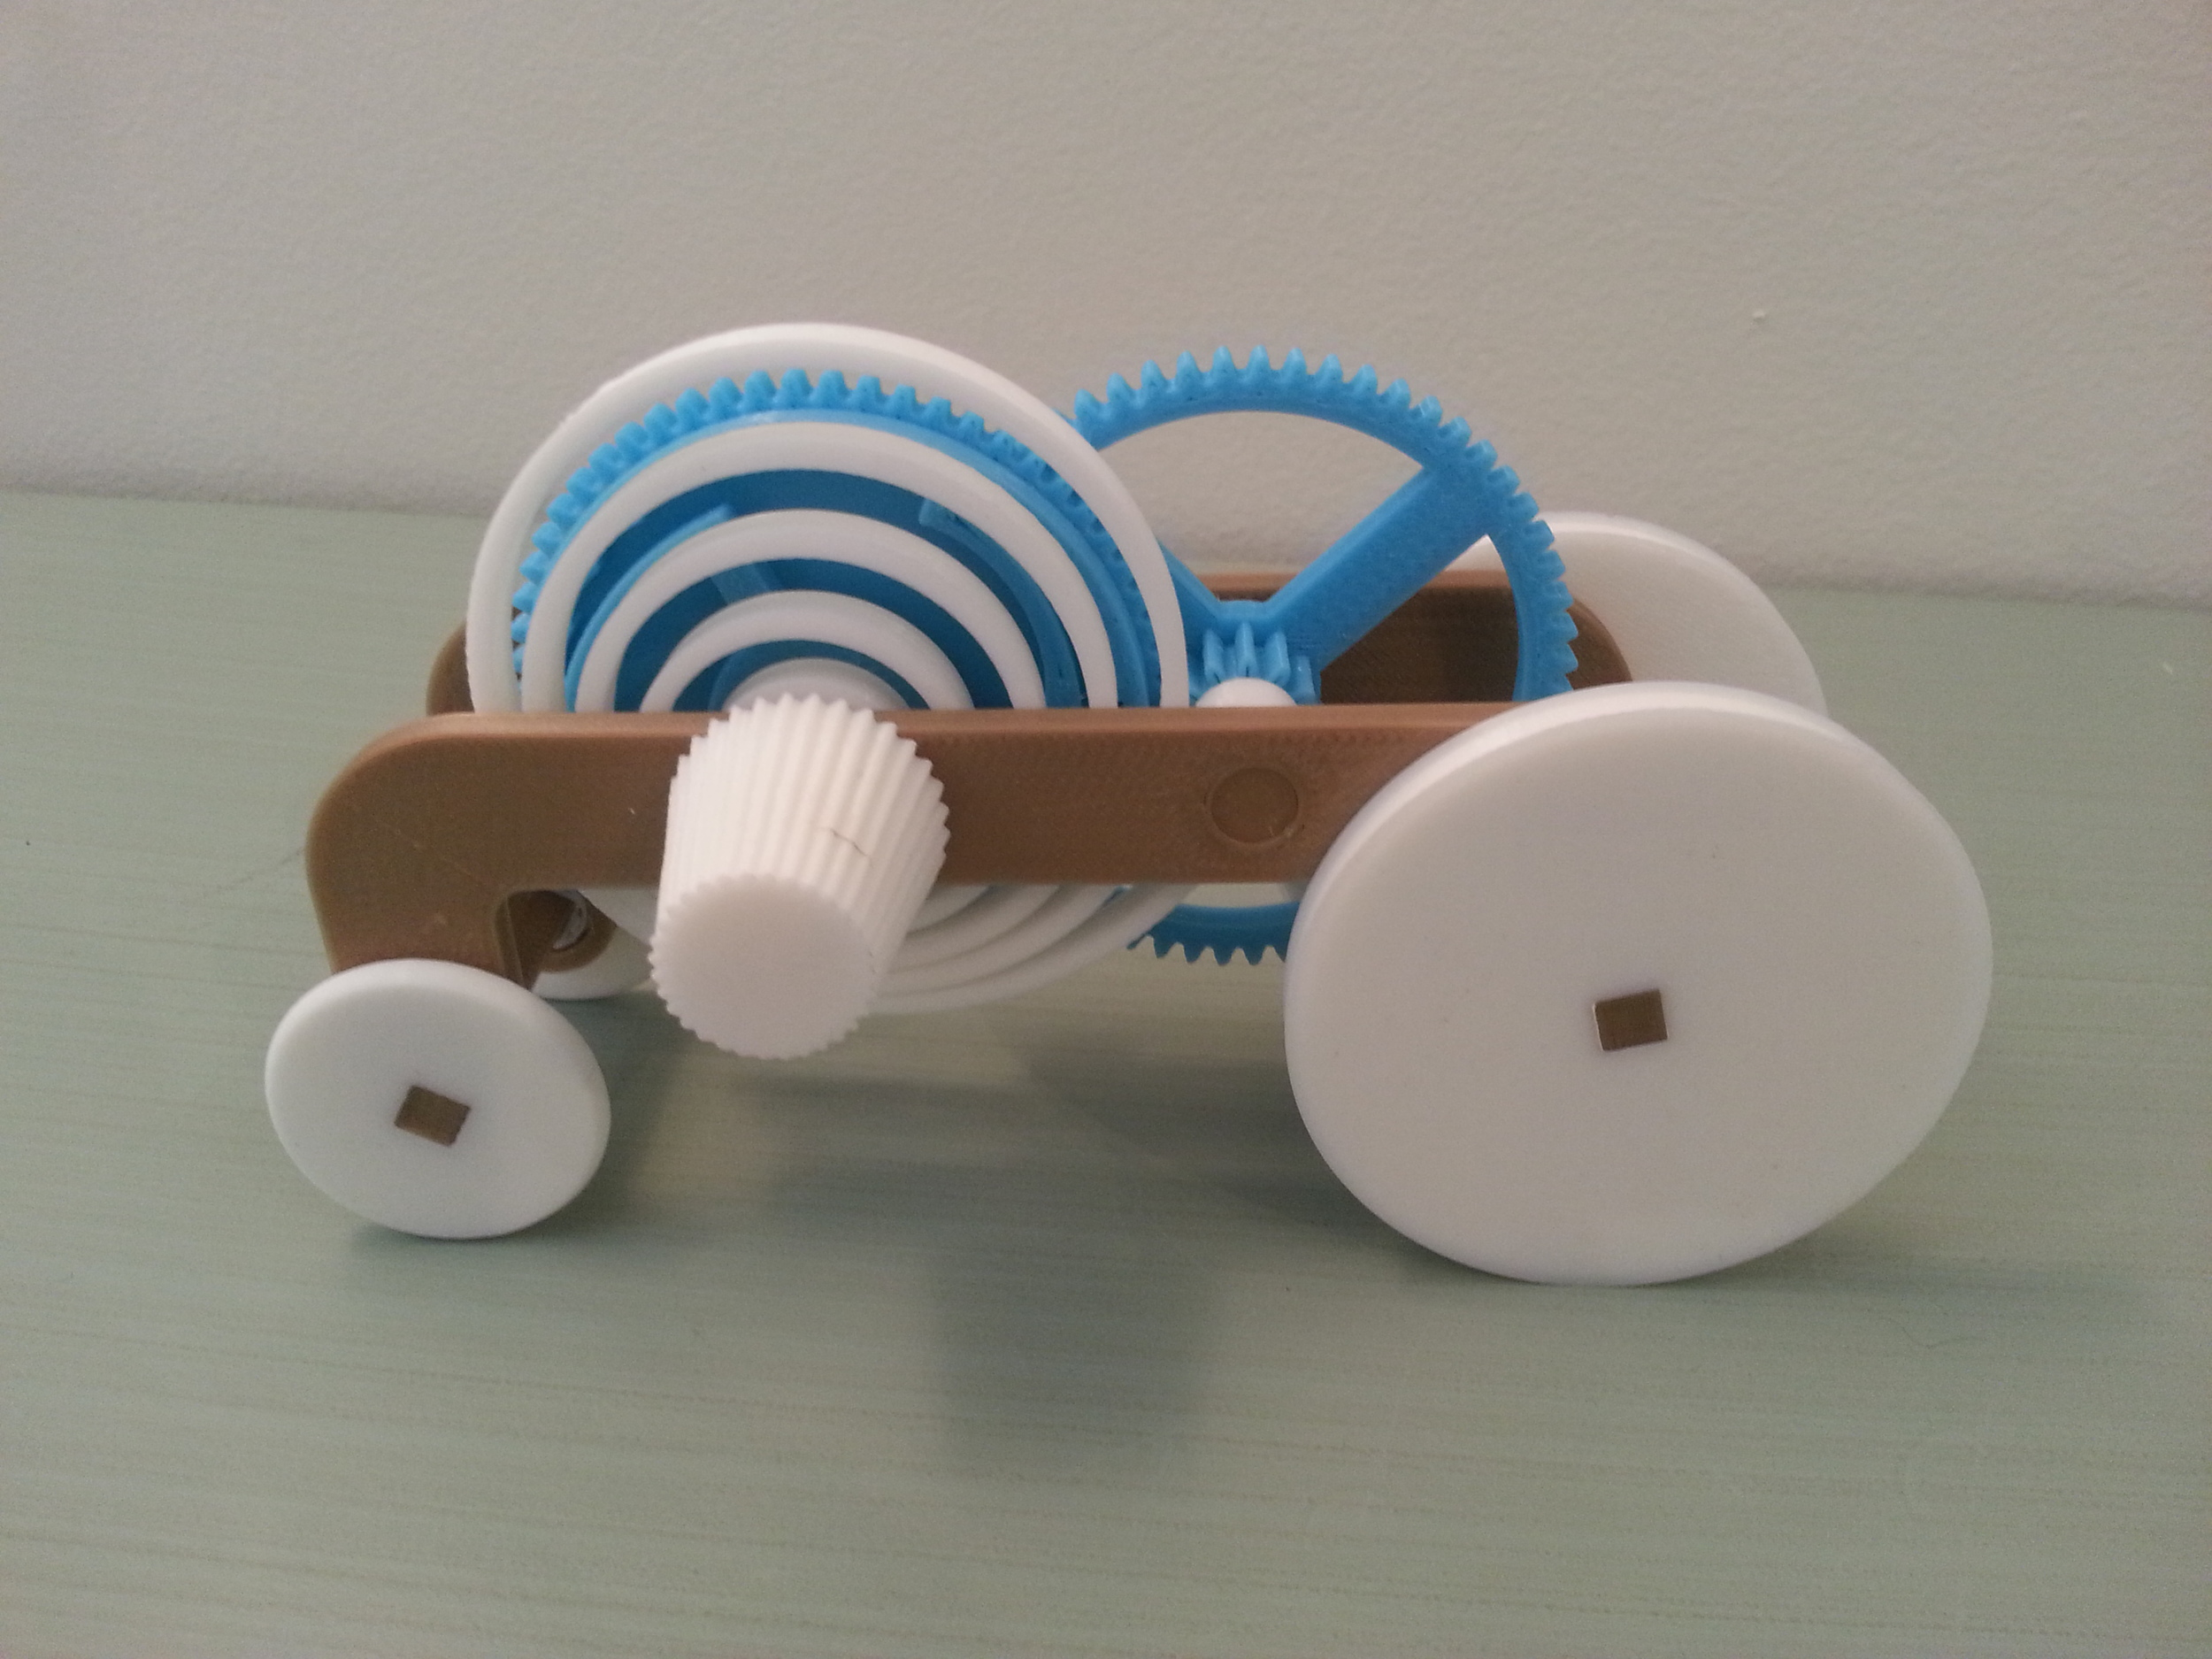 Spring Powered Rolling Vehicle